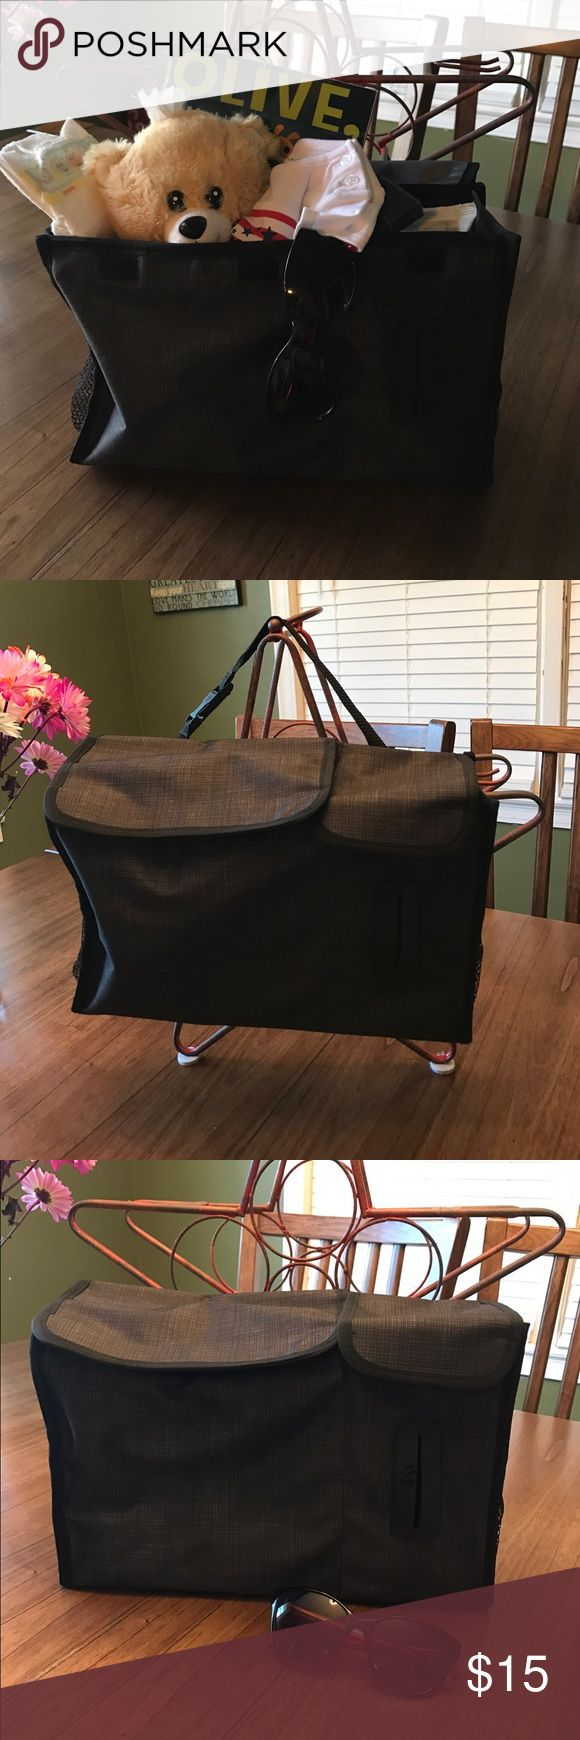 Thirty One storage container, perfect for your car Great to use in your car to keep extras of all those baby items you need on hand. It even has a strap to hang on the seat too!! Love this!! Thirty One Accessories